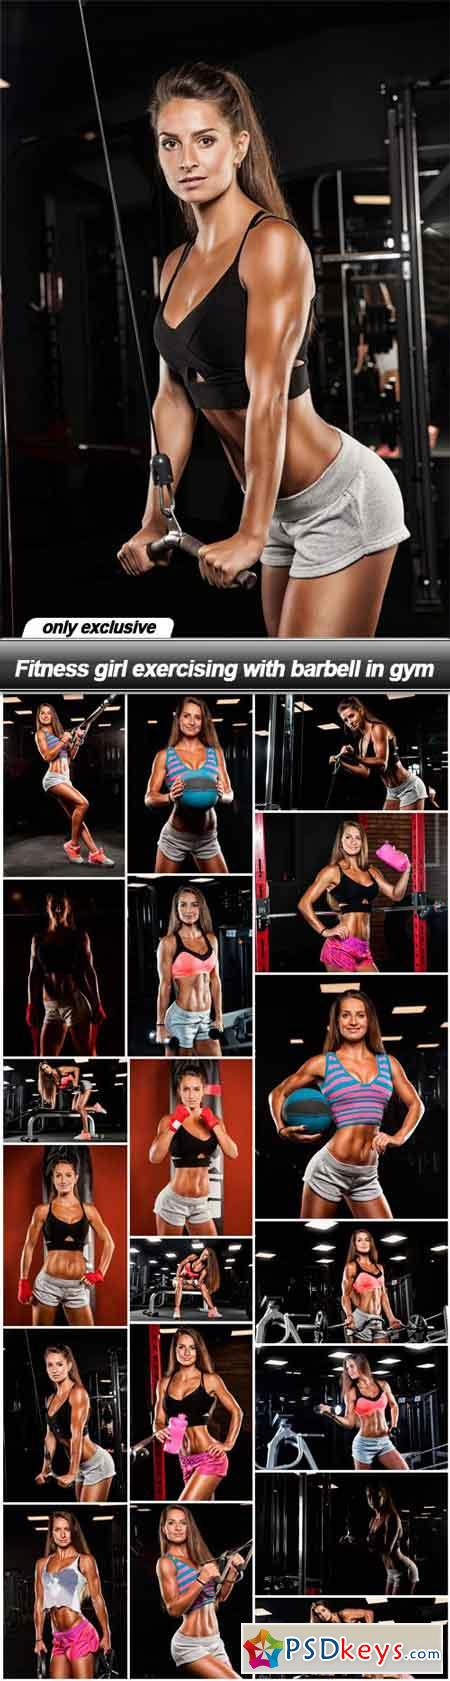 Fitness girl exercising with barbell in gym - 19 UHQ JPEG